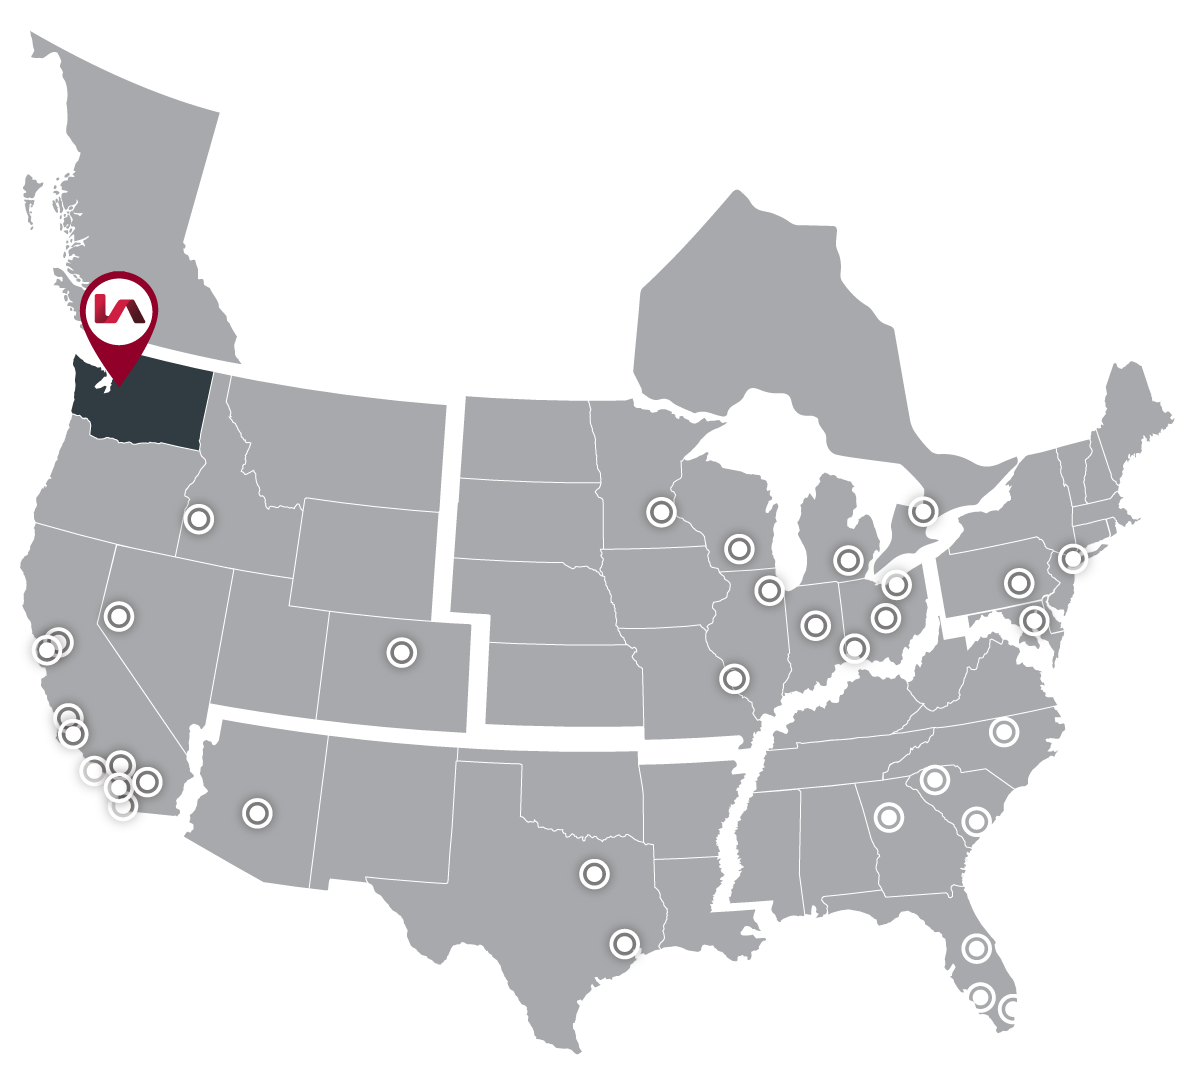 Lee & Associates Locations